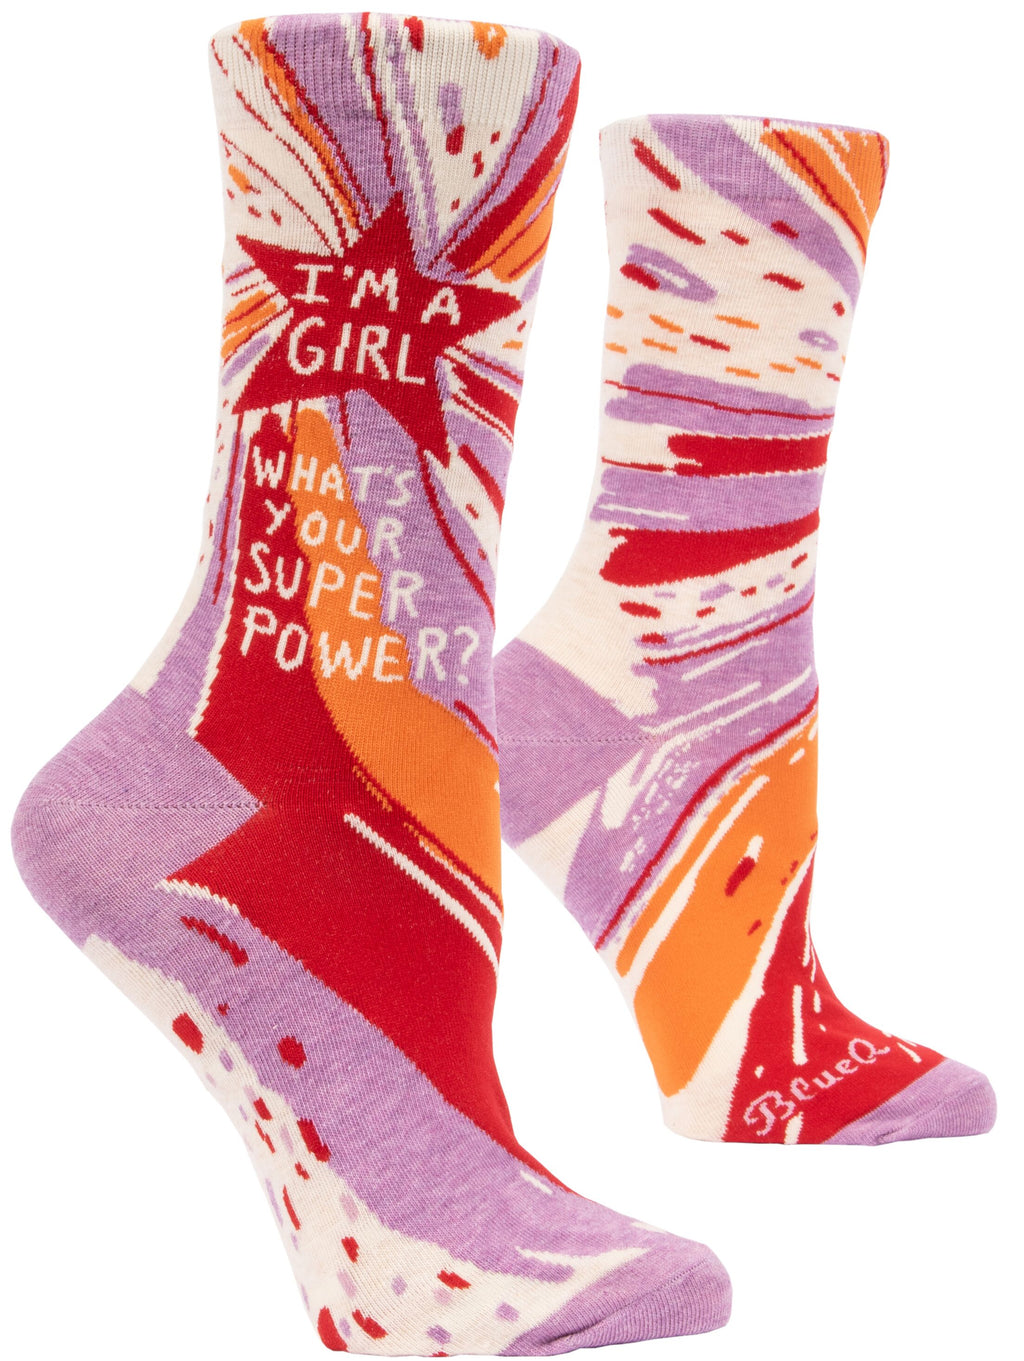 Blue Q I'm a Girl, What's your Superpower? in pink, fits women's size 5 to 10.